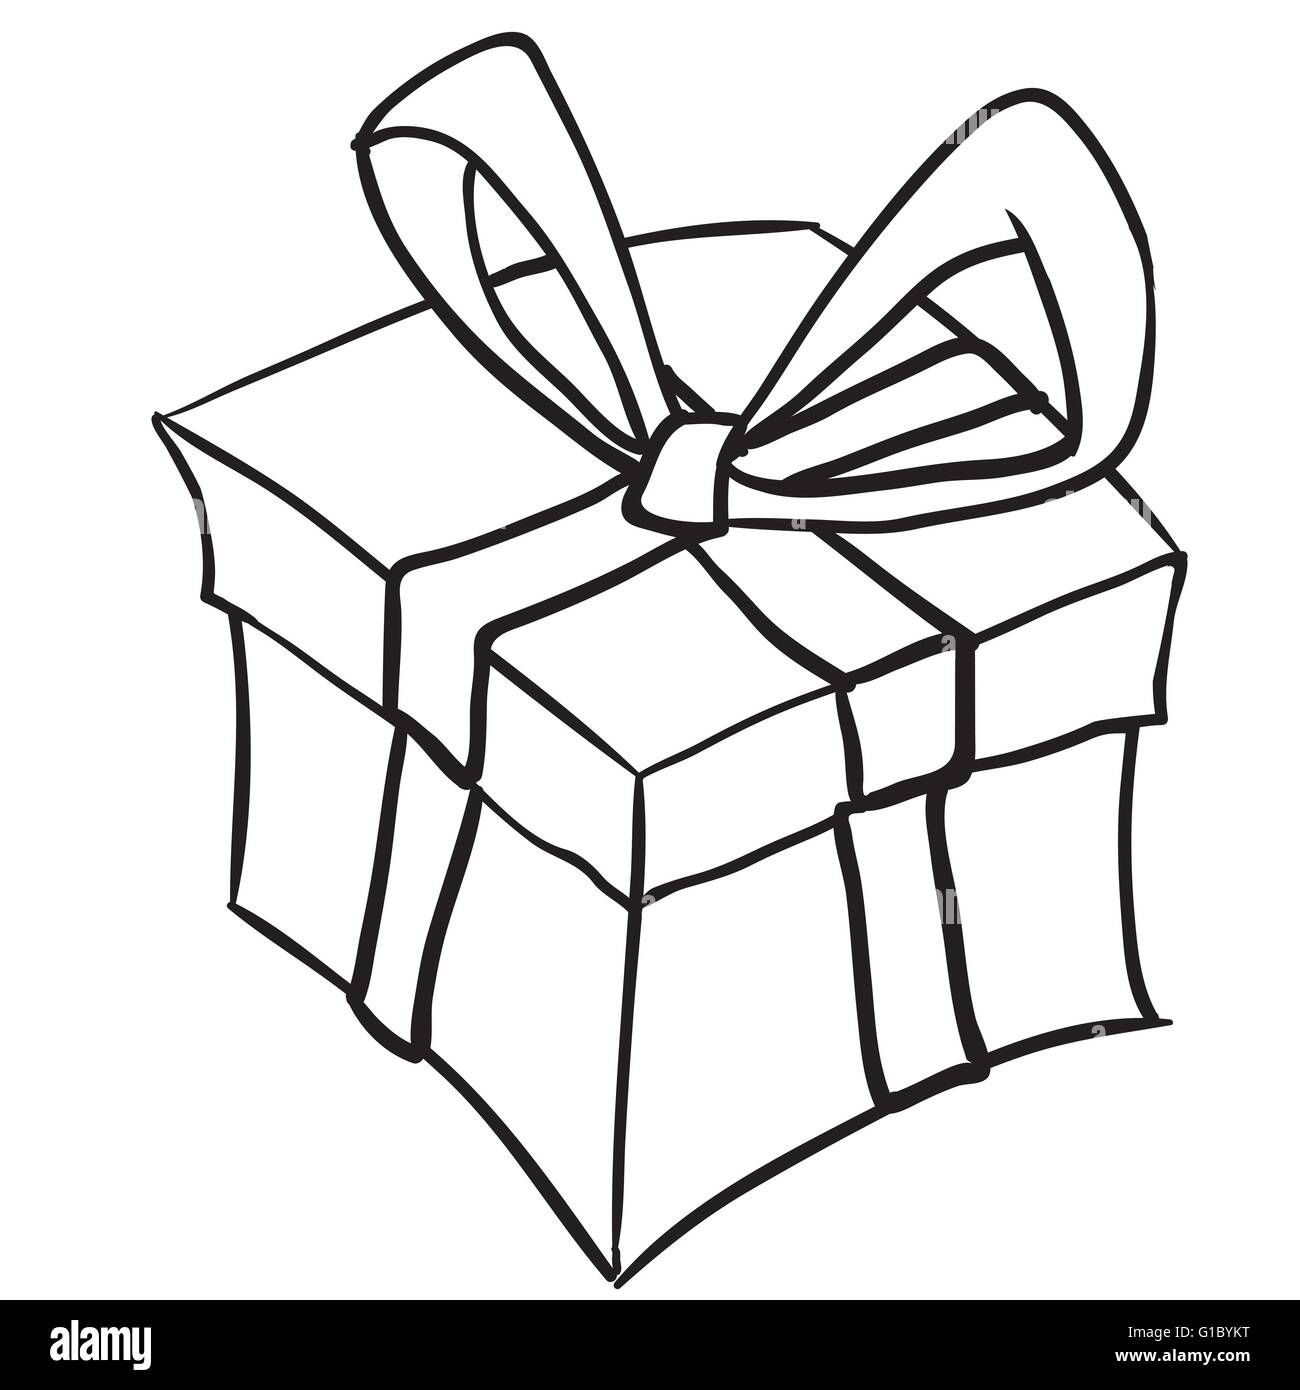 Simple black and white gift box cartoon doodle stock vector art simple black and white gift box cartoon doodle negle Gallery